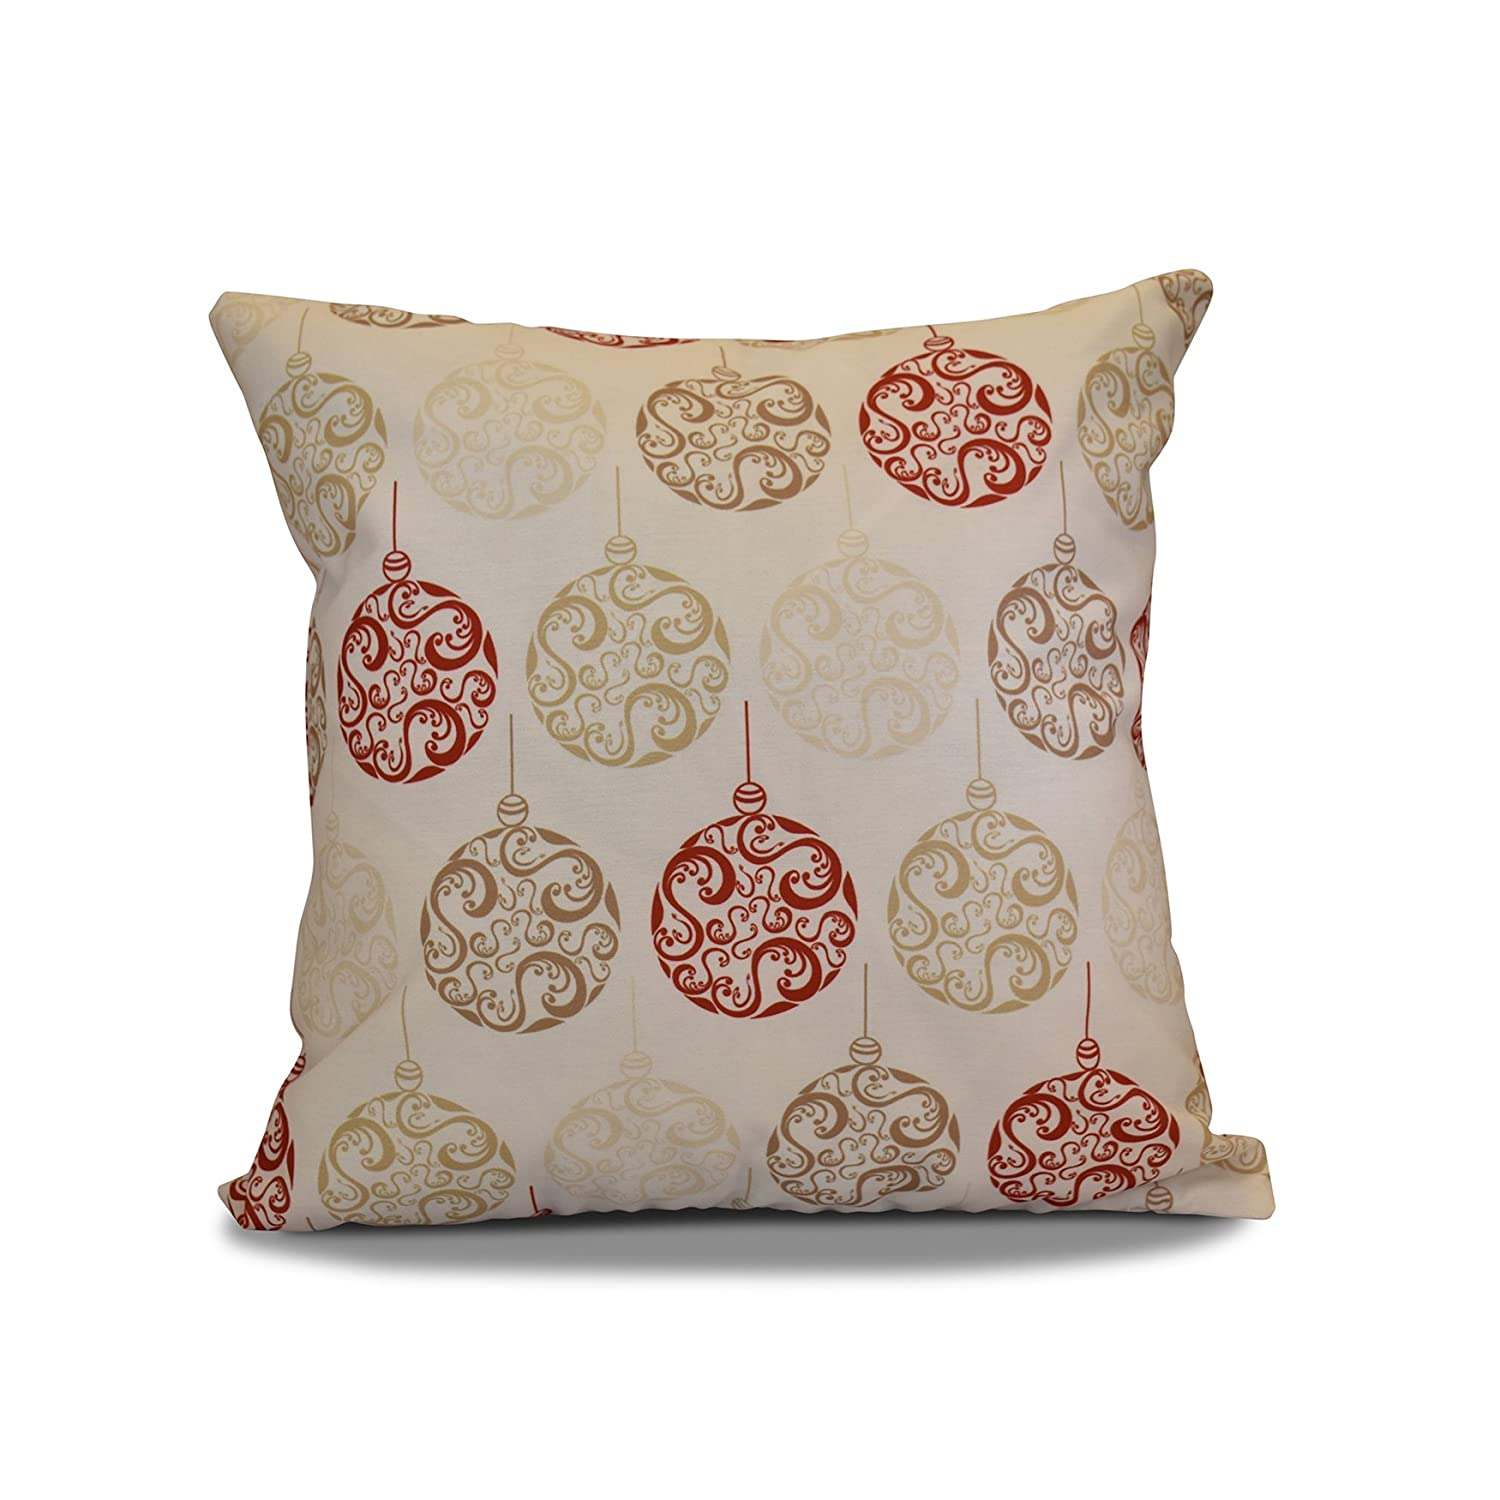 E by design O5PHGN680IV4BR9-16 16 x 16 Decorative Geometric Print Holiday Brown Outdoor Pillow